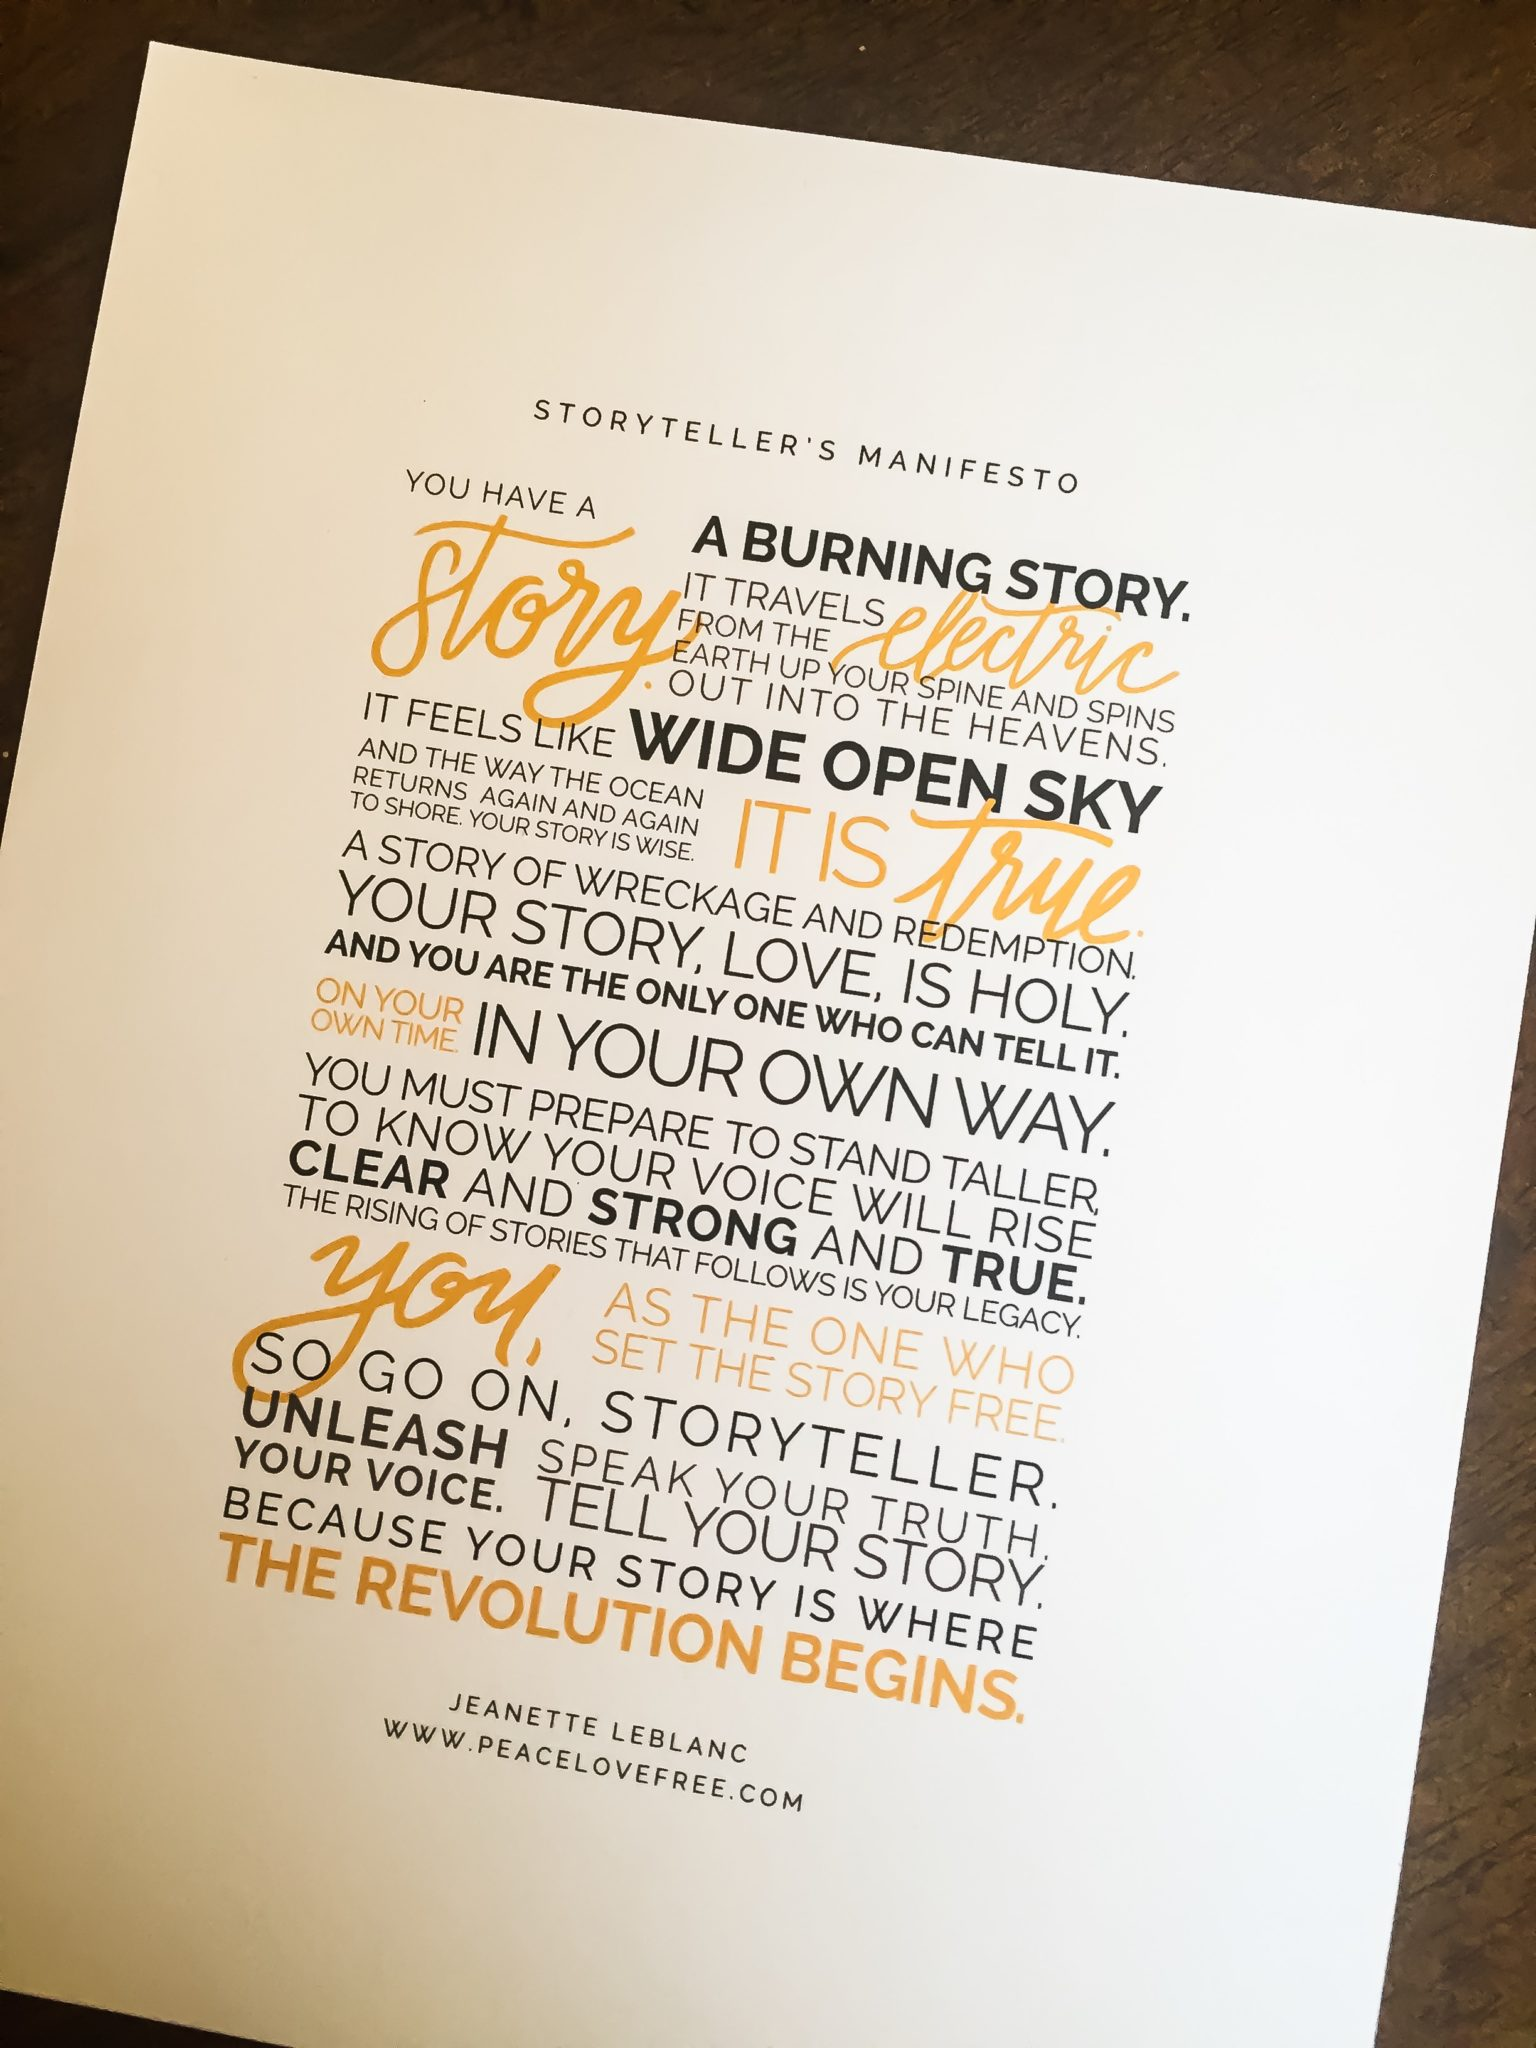 The Storyteller's Manifesto  Quote by Jeanette LeBlanc